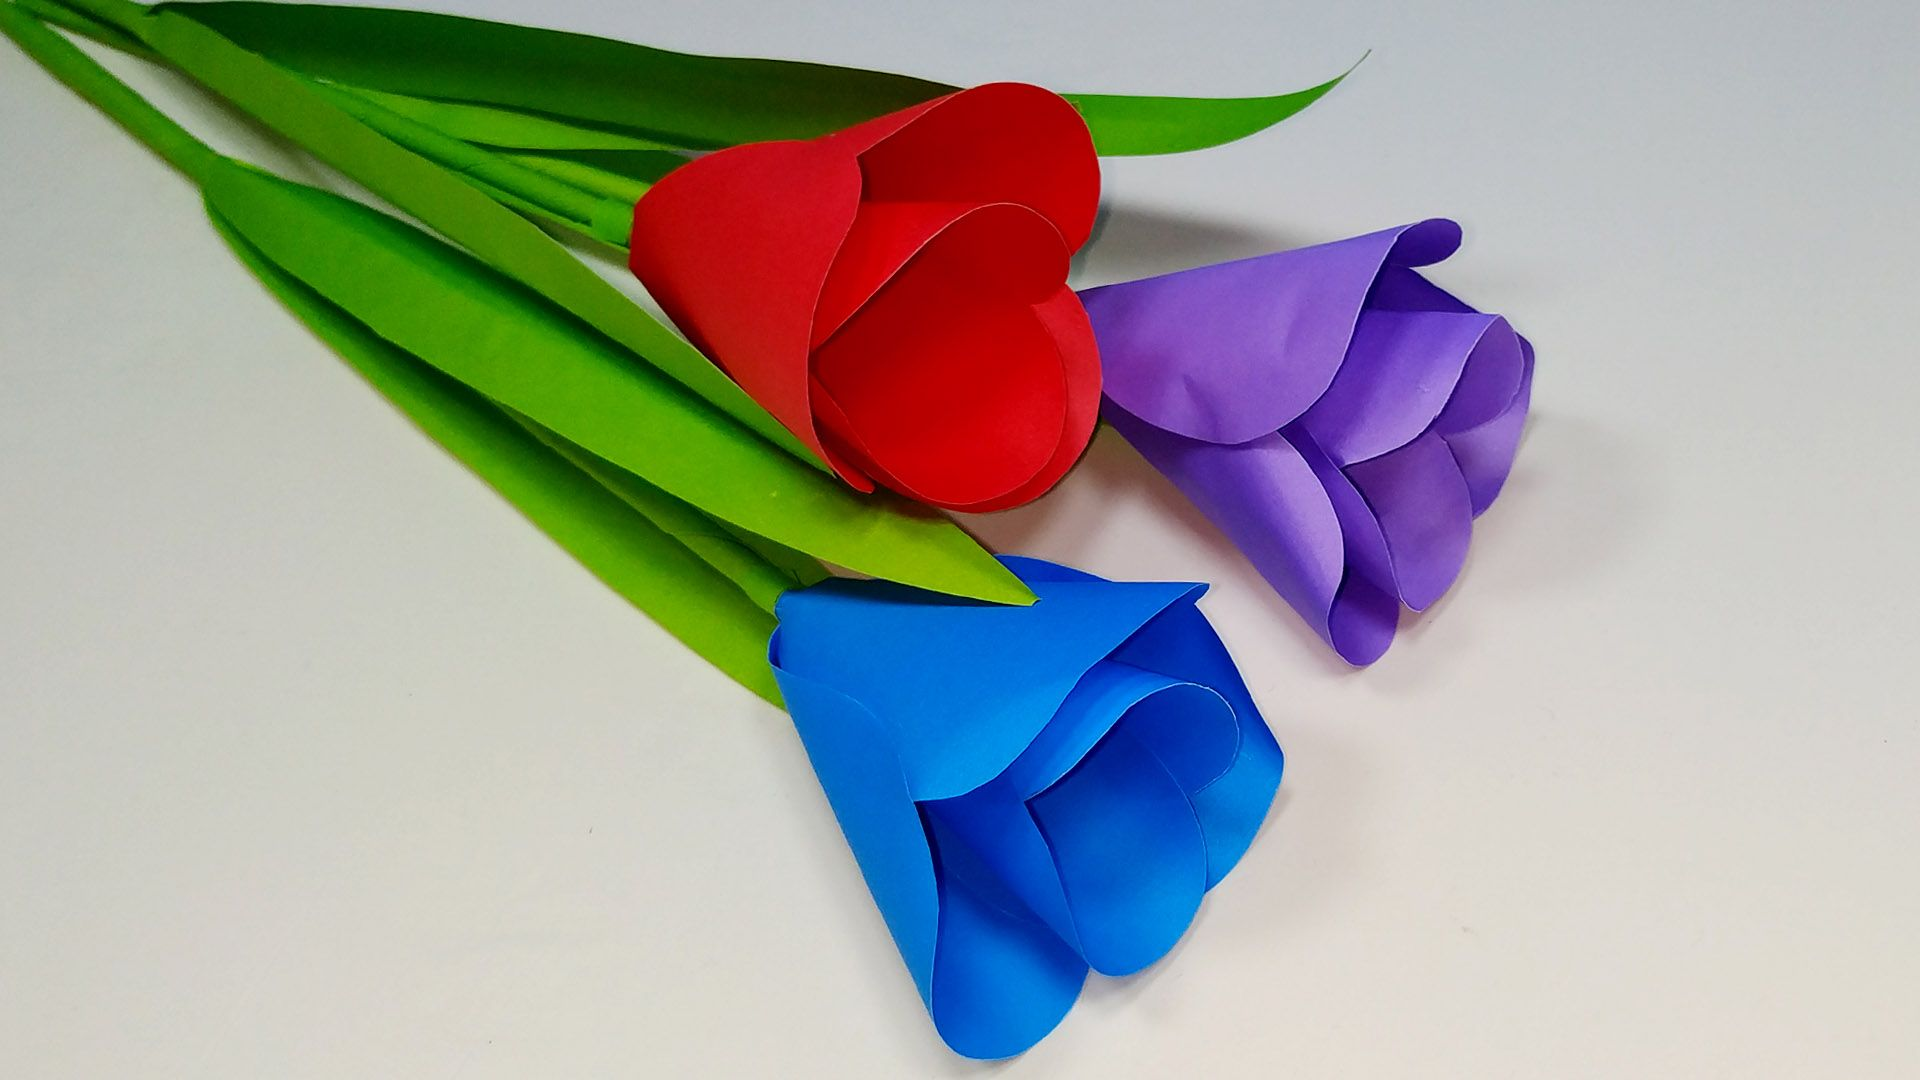 Paper Flower Making Easy Making Paper Tulip Flower Tulip Flower Craft How To Make Paper Flowers Flower Crafts Tulips Flowers